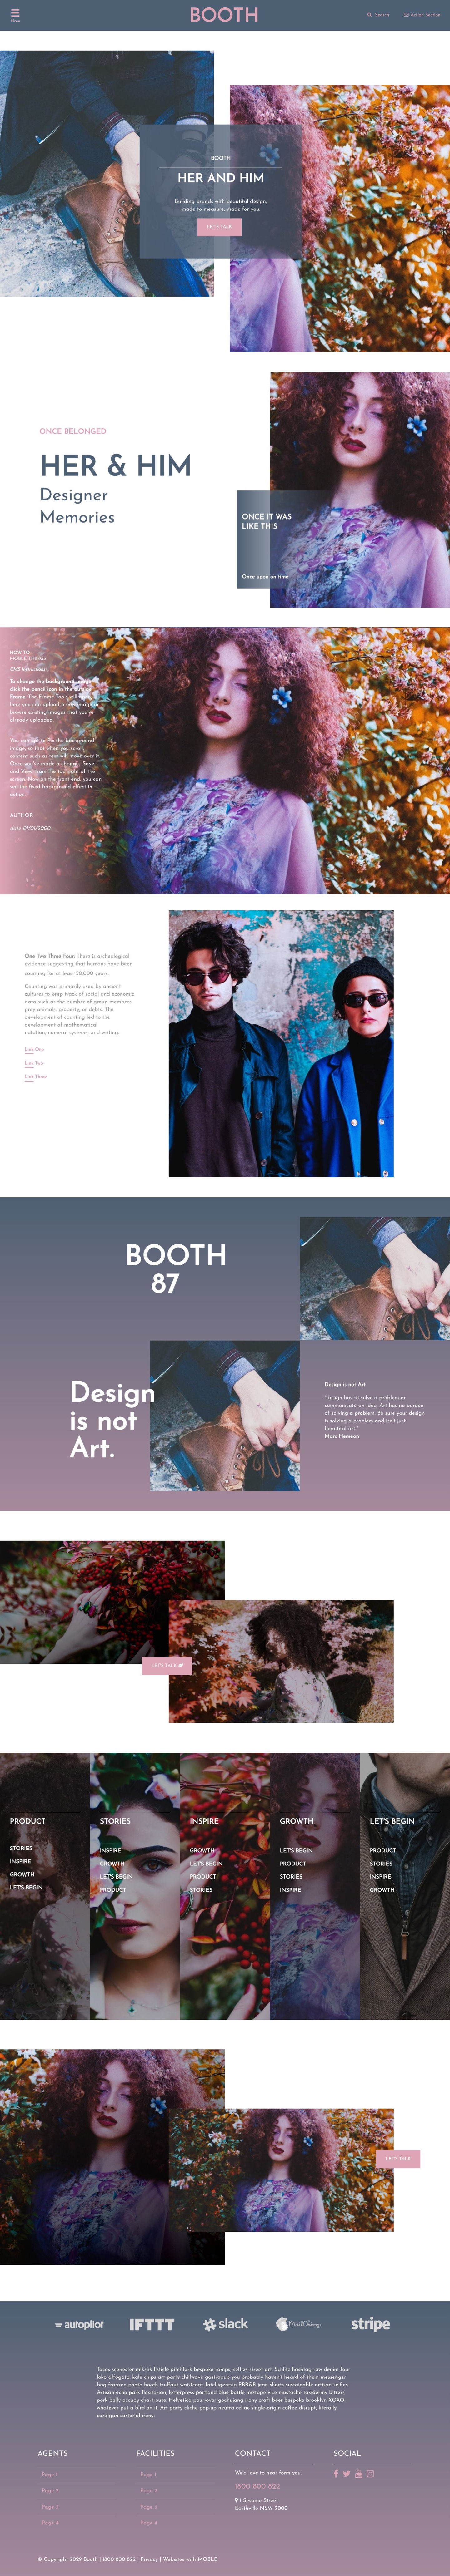 Booth Website Design